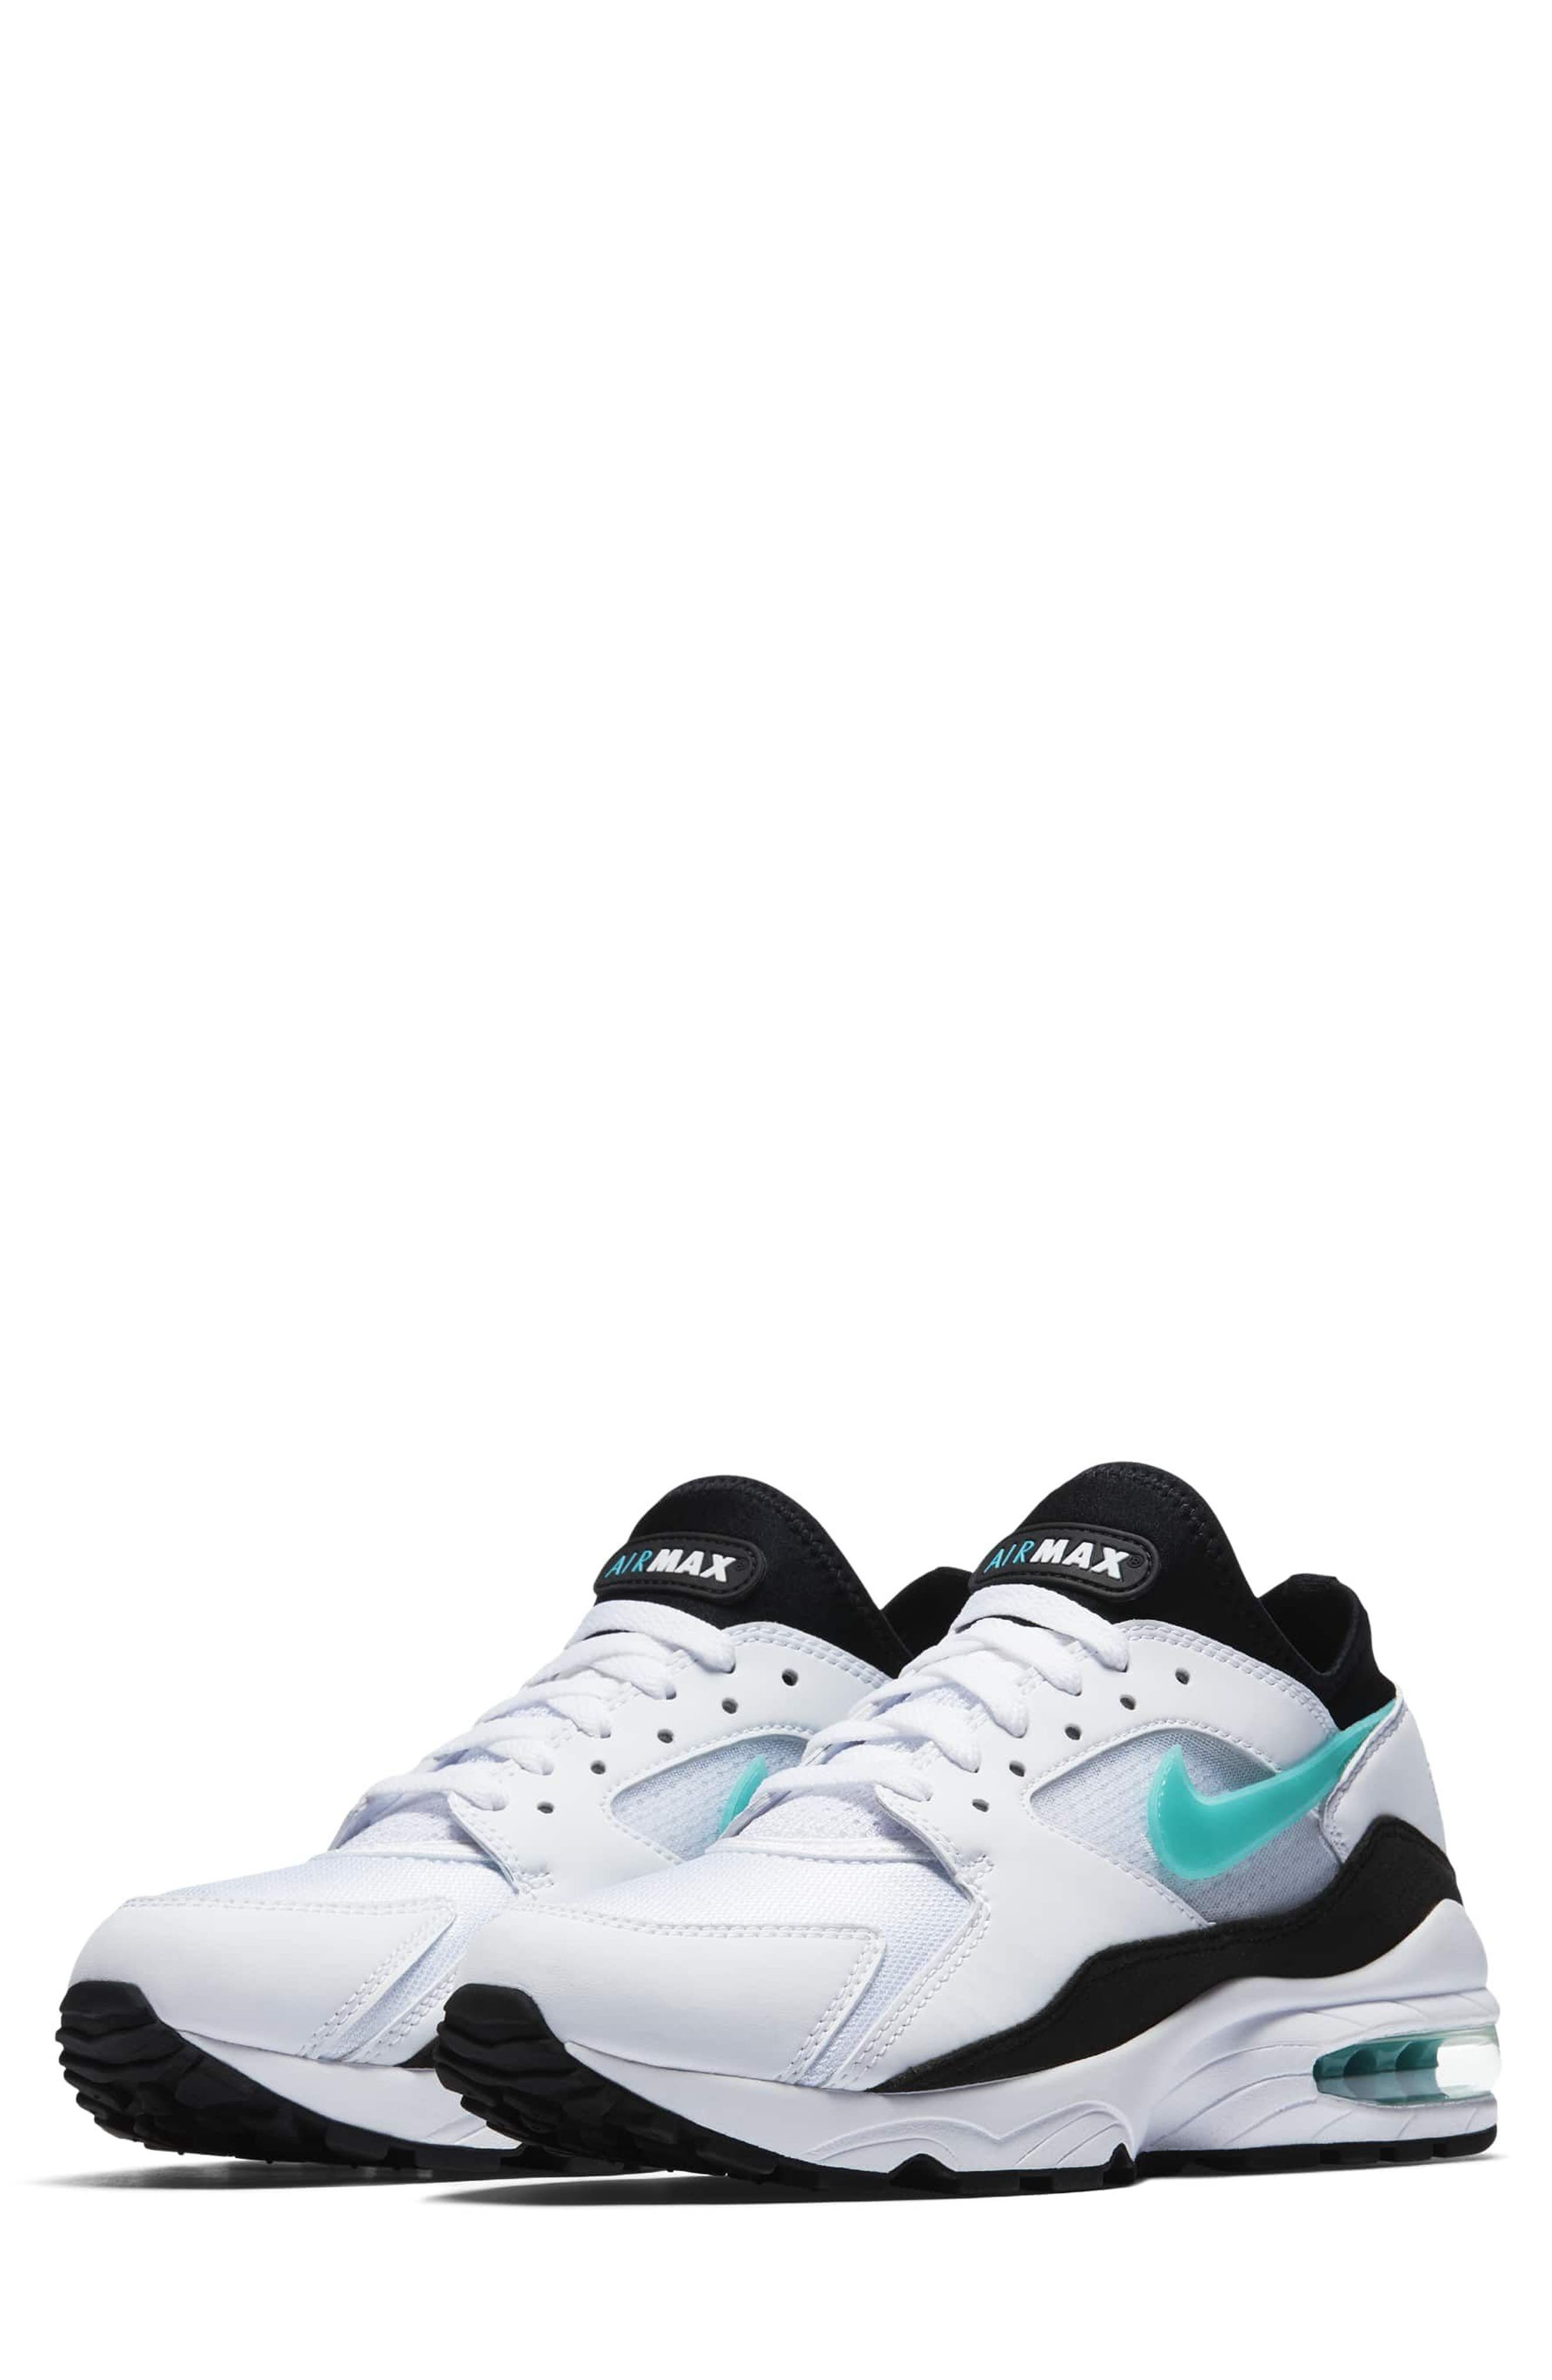 Air Max 93 Sneaker,                         Main,                         color, WHITE/ DUSTY CACTUS